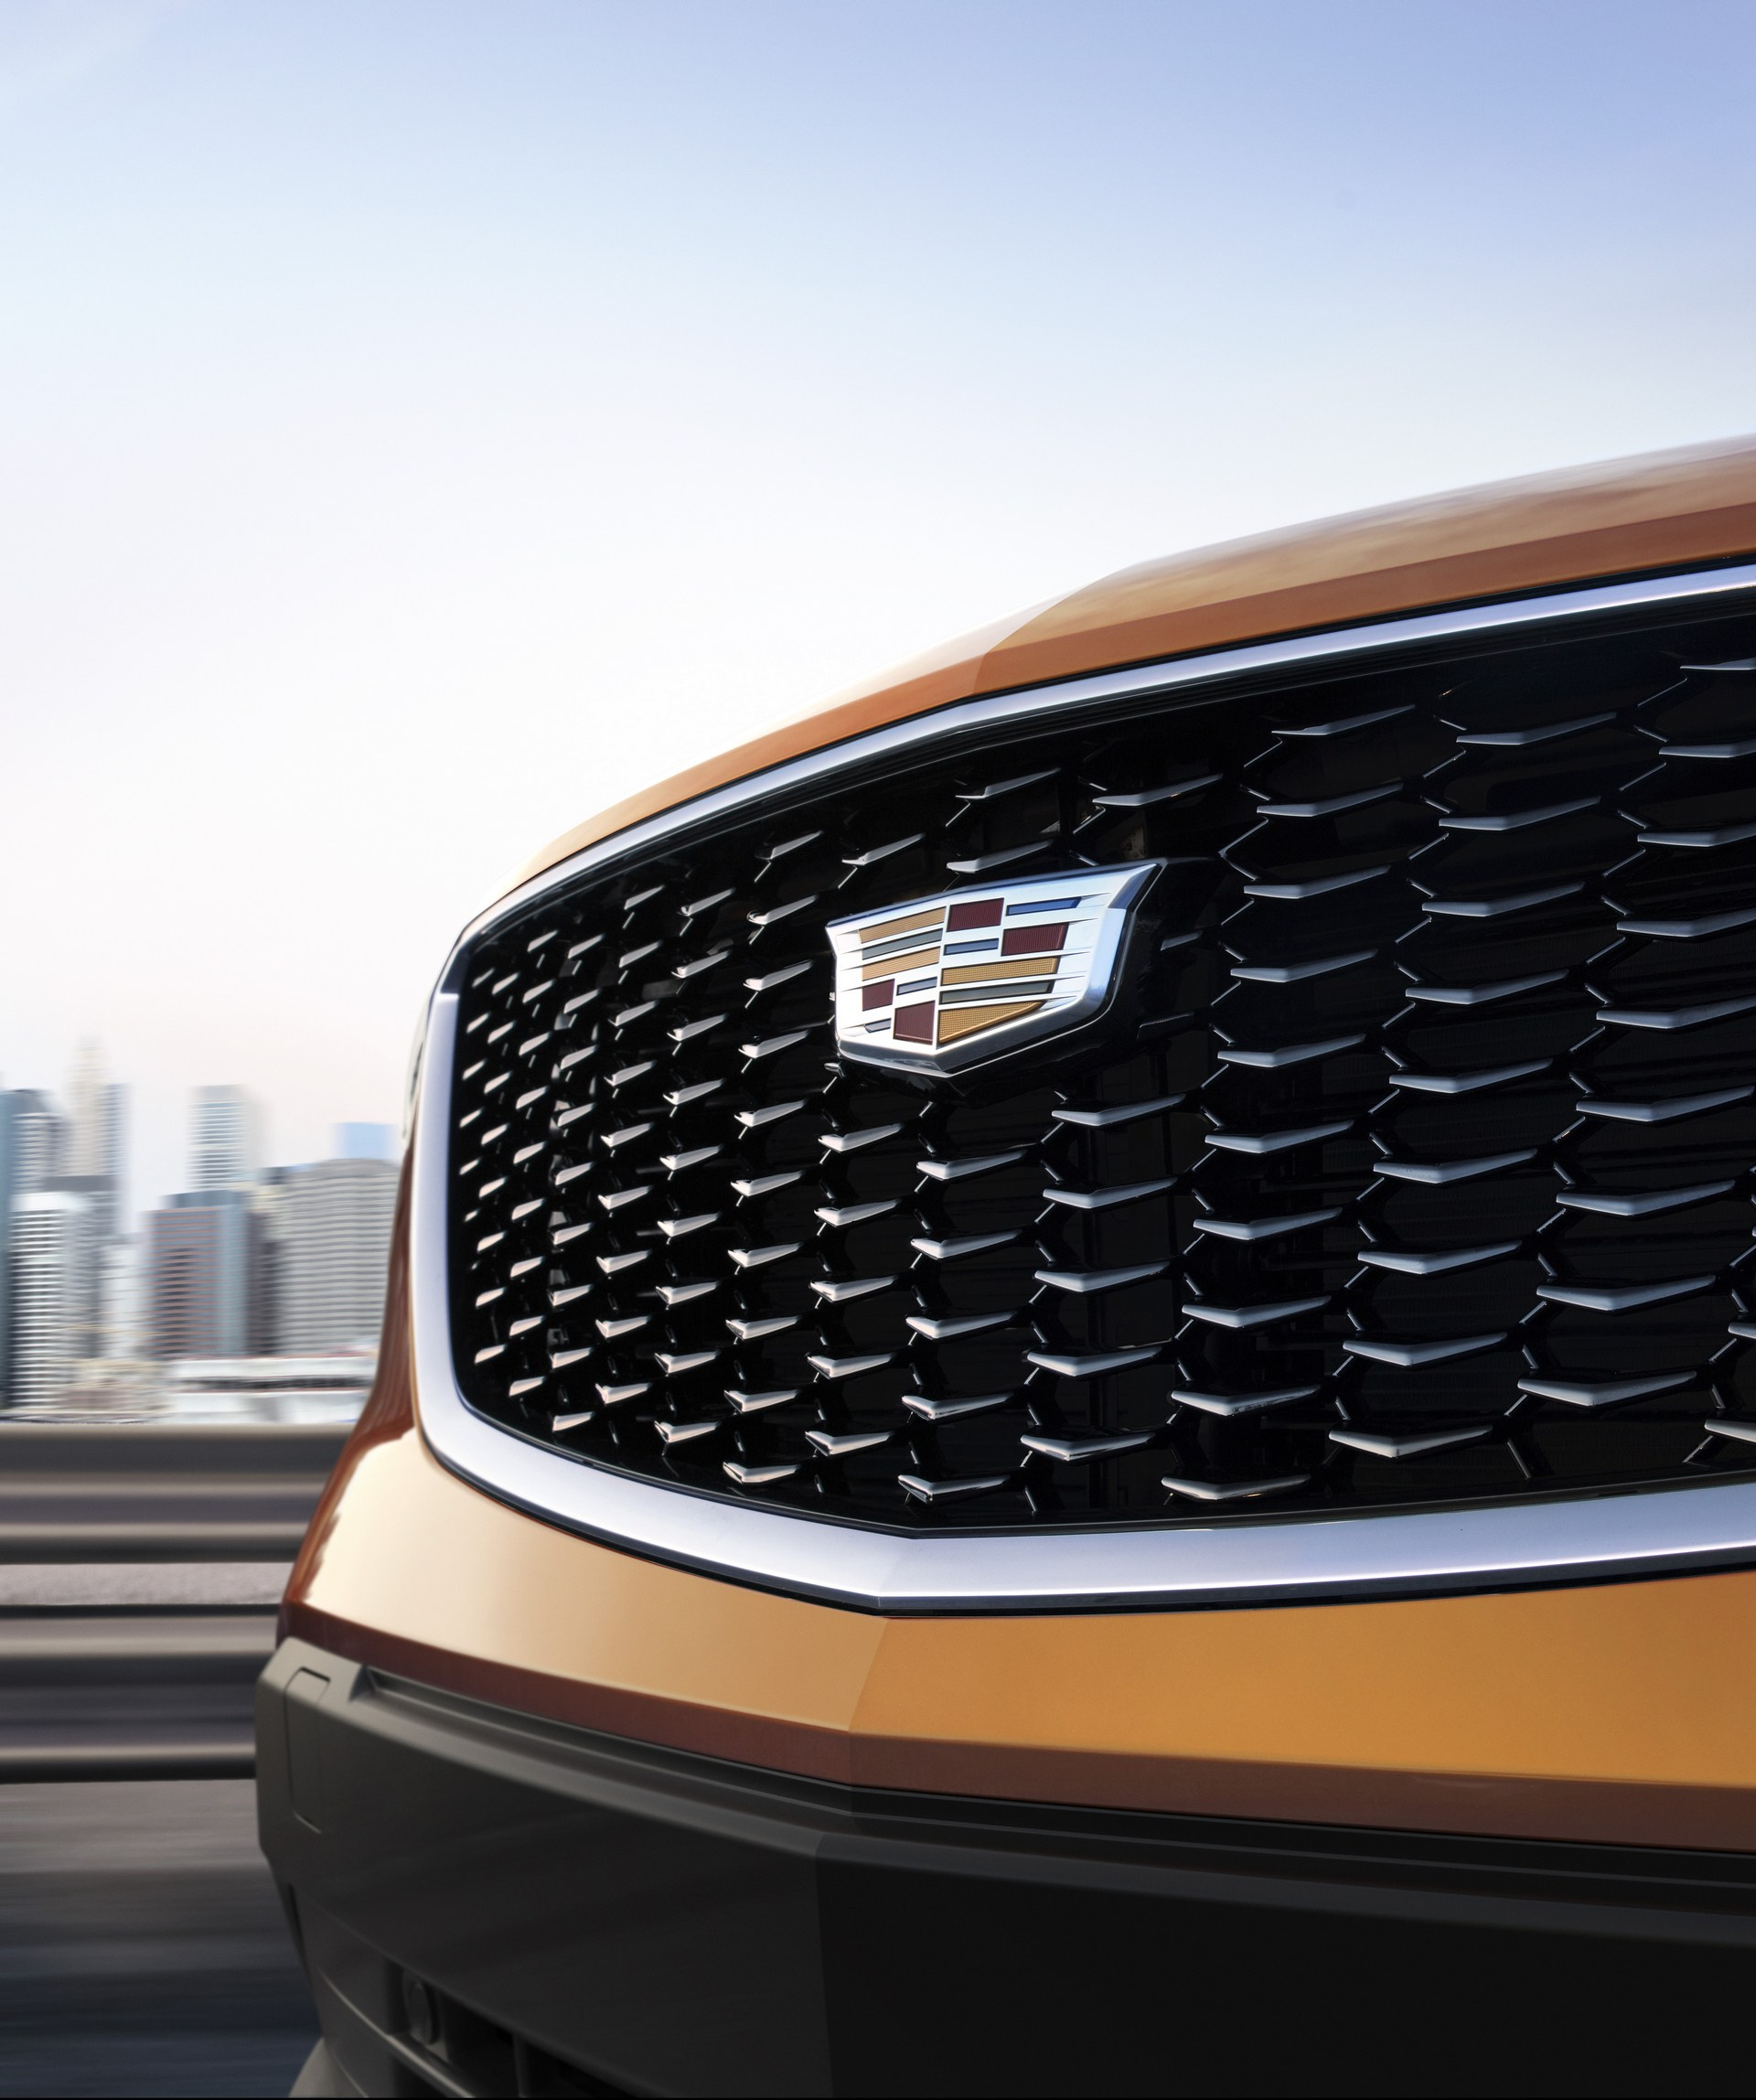 New Cadillac XT6 Confirmed To Premiere At The 2019 Detroit